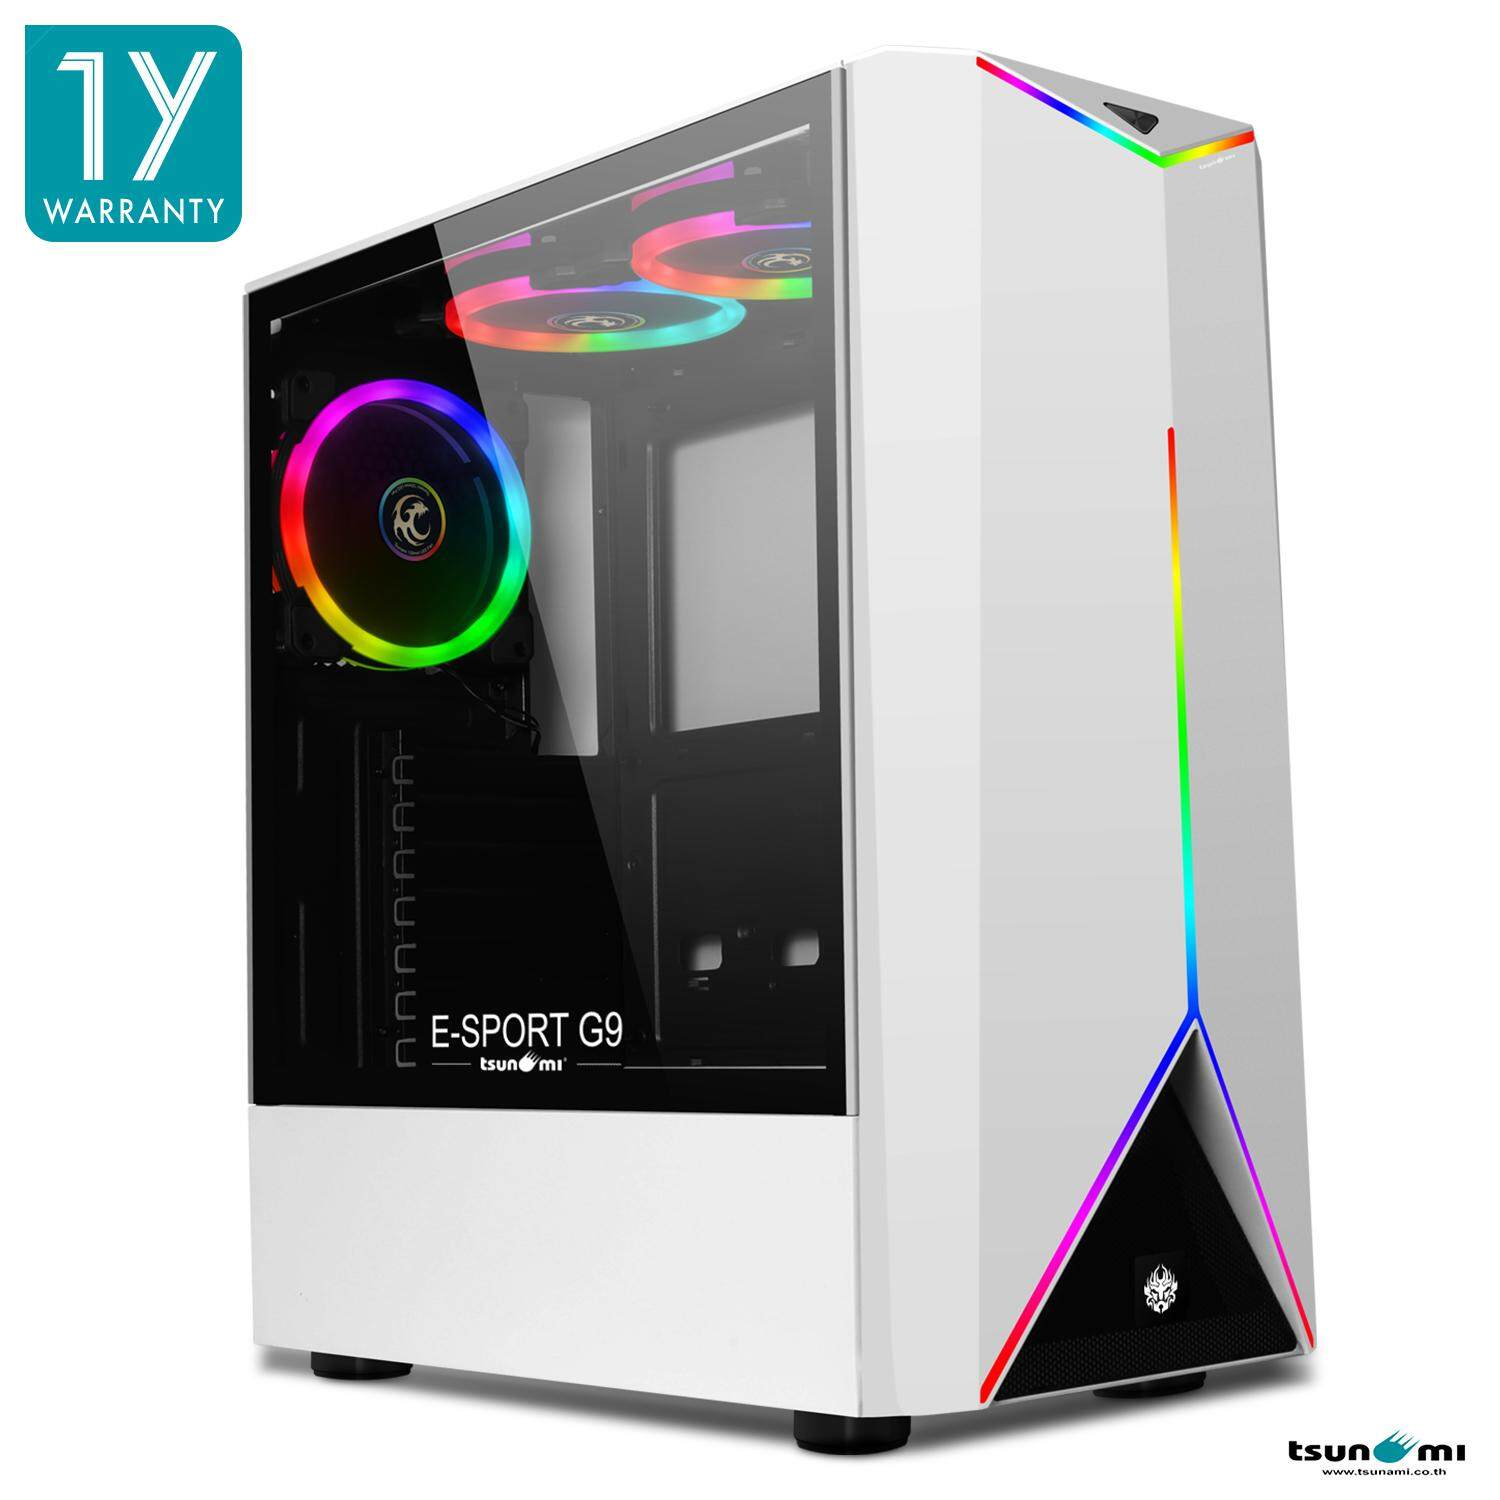 E-Sport G9 Dual Ring Rgb Atx Gaming Case (with Tempered Glass Side Panel) + G-Series Rgb 12cm Cooling Fan X3 By Fun Republic Co.,ltd..